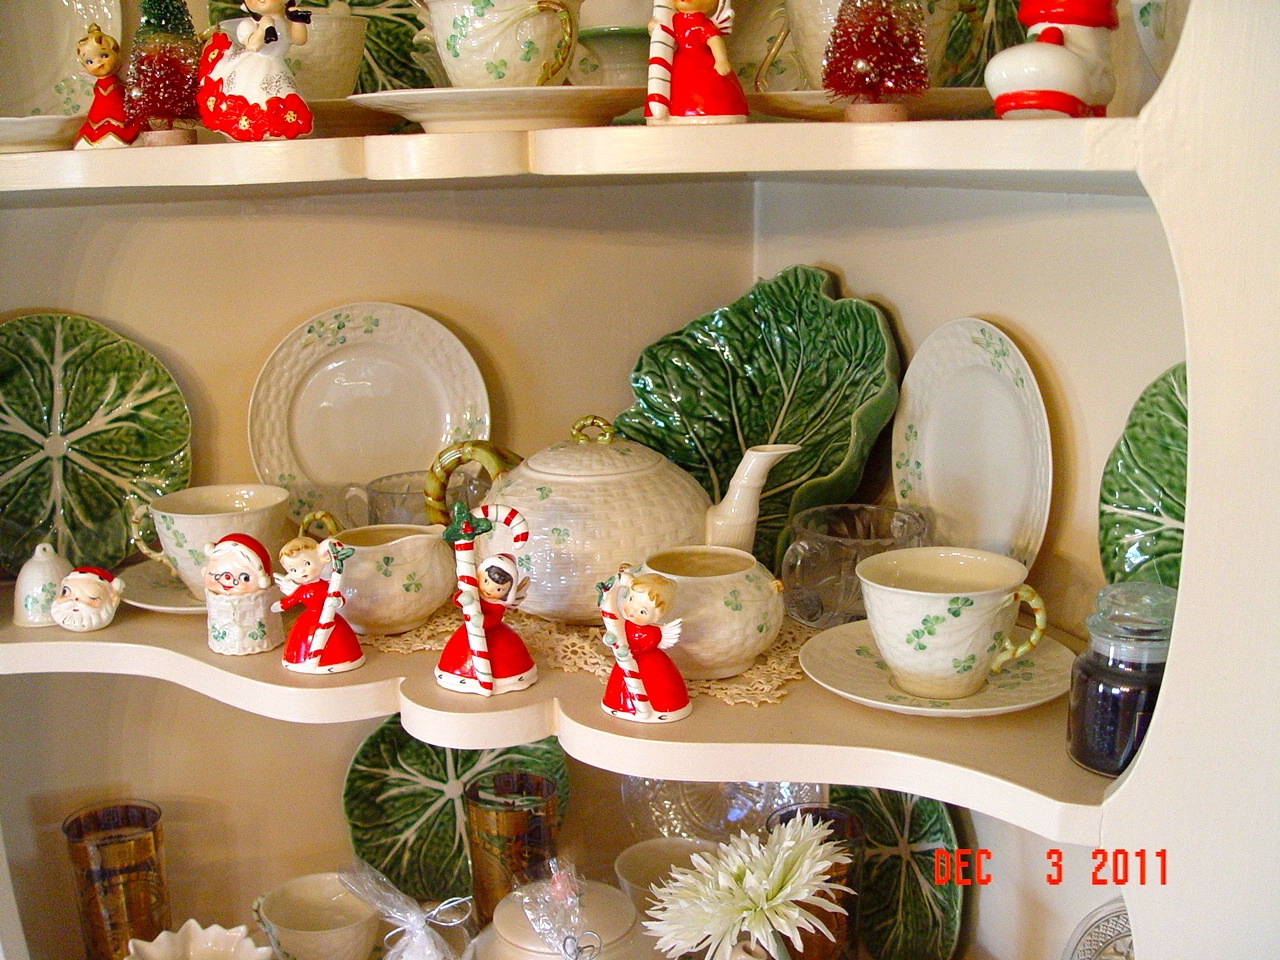 2011-12 Xmas dining room cabinet b | Flickr - Photo Sharing!